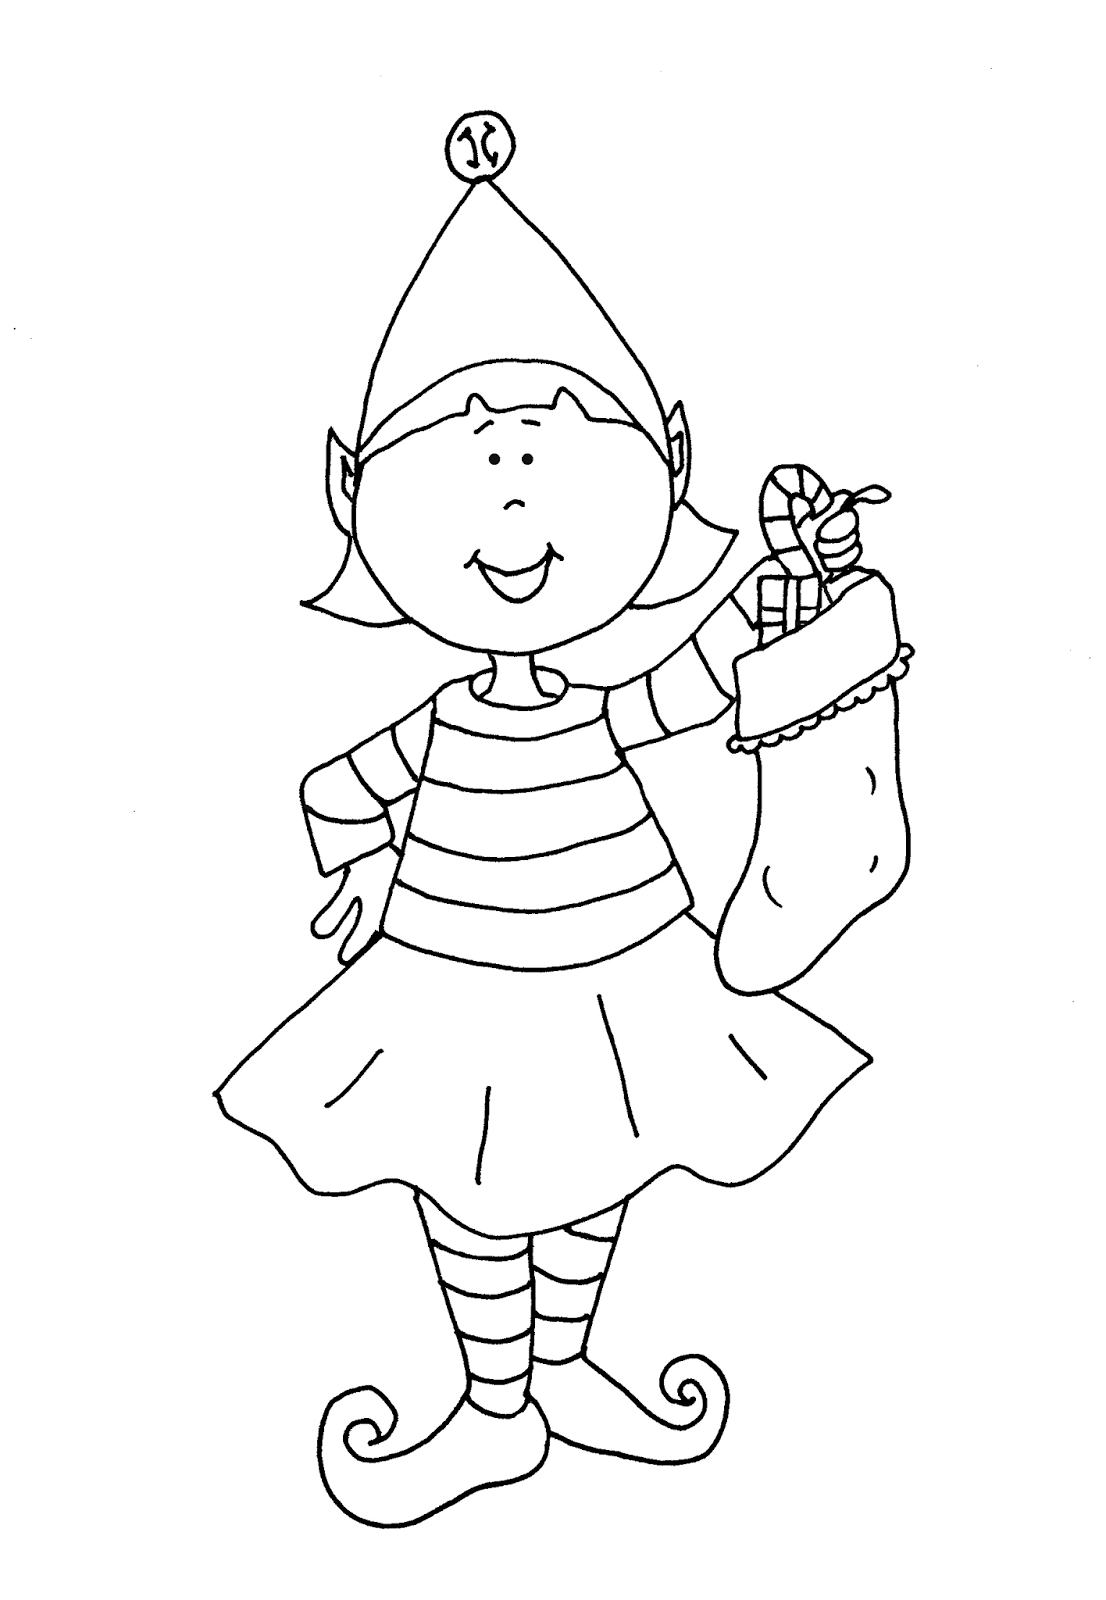 free christmas coloring pages to print for girls free dearie dolls digi stamps elf - Girl Elf Coloring Page